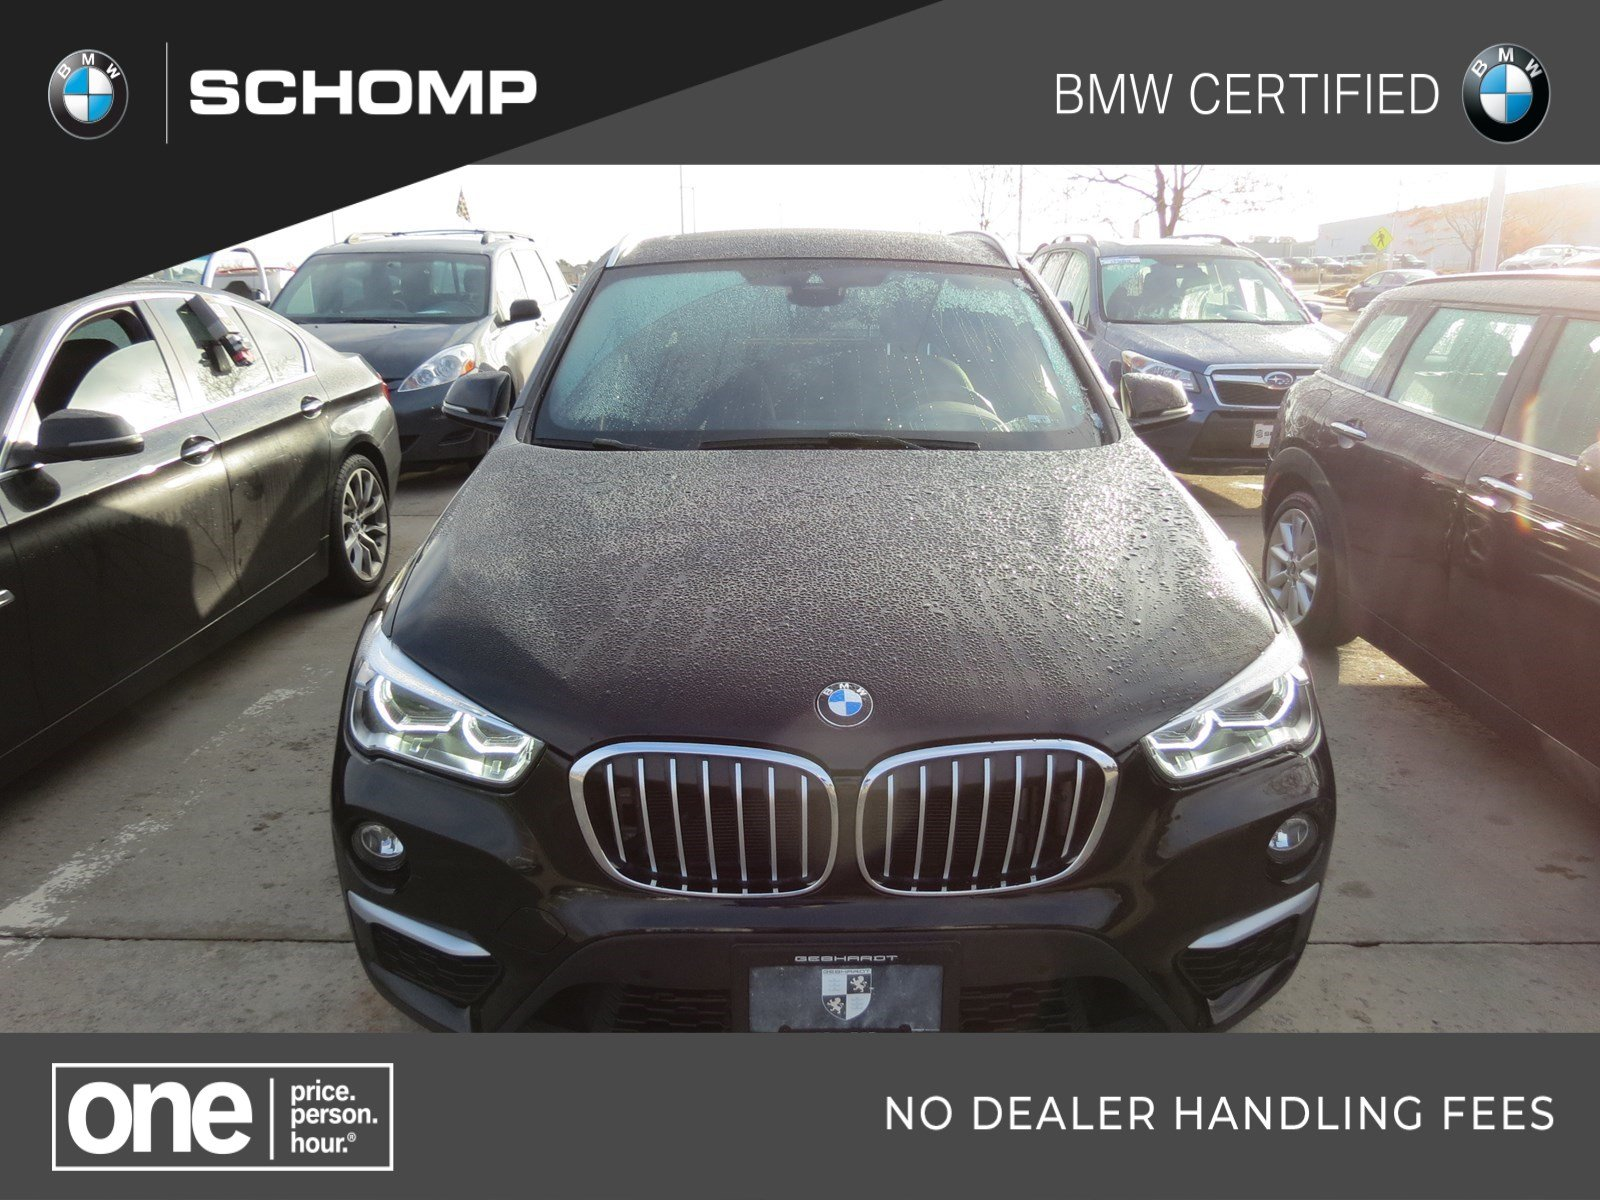 Certified Pre Owned BMW >> Certified Pre Owned Bmw 2016 Xdrive28i